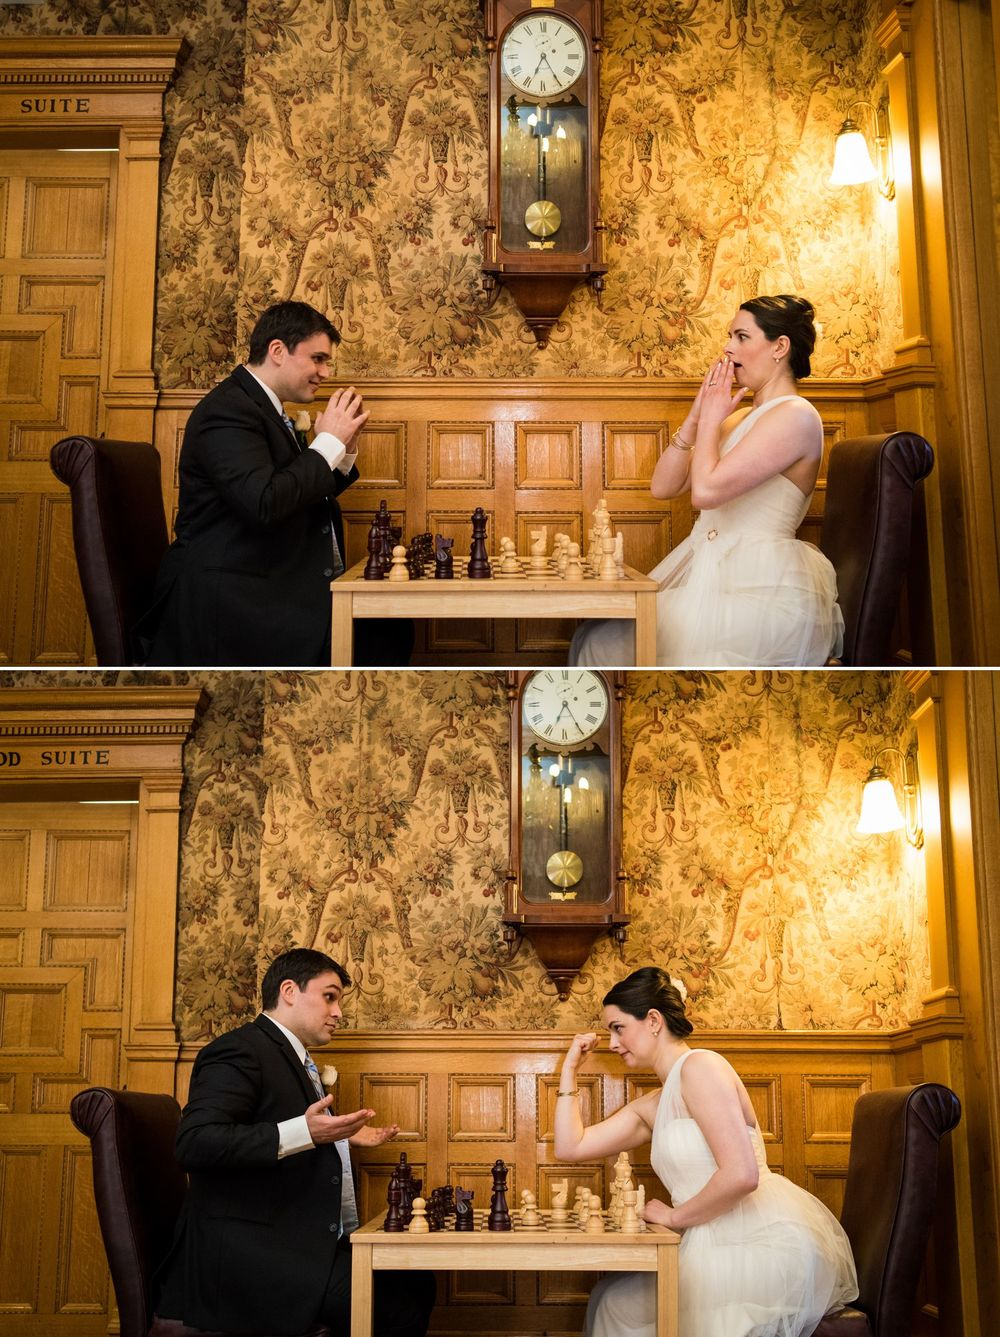 The bride and groom taking time to play a game of chess before their ceremony